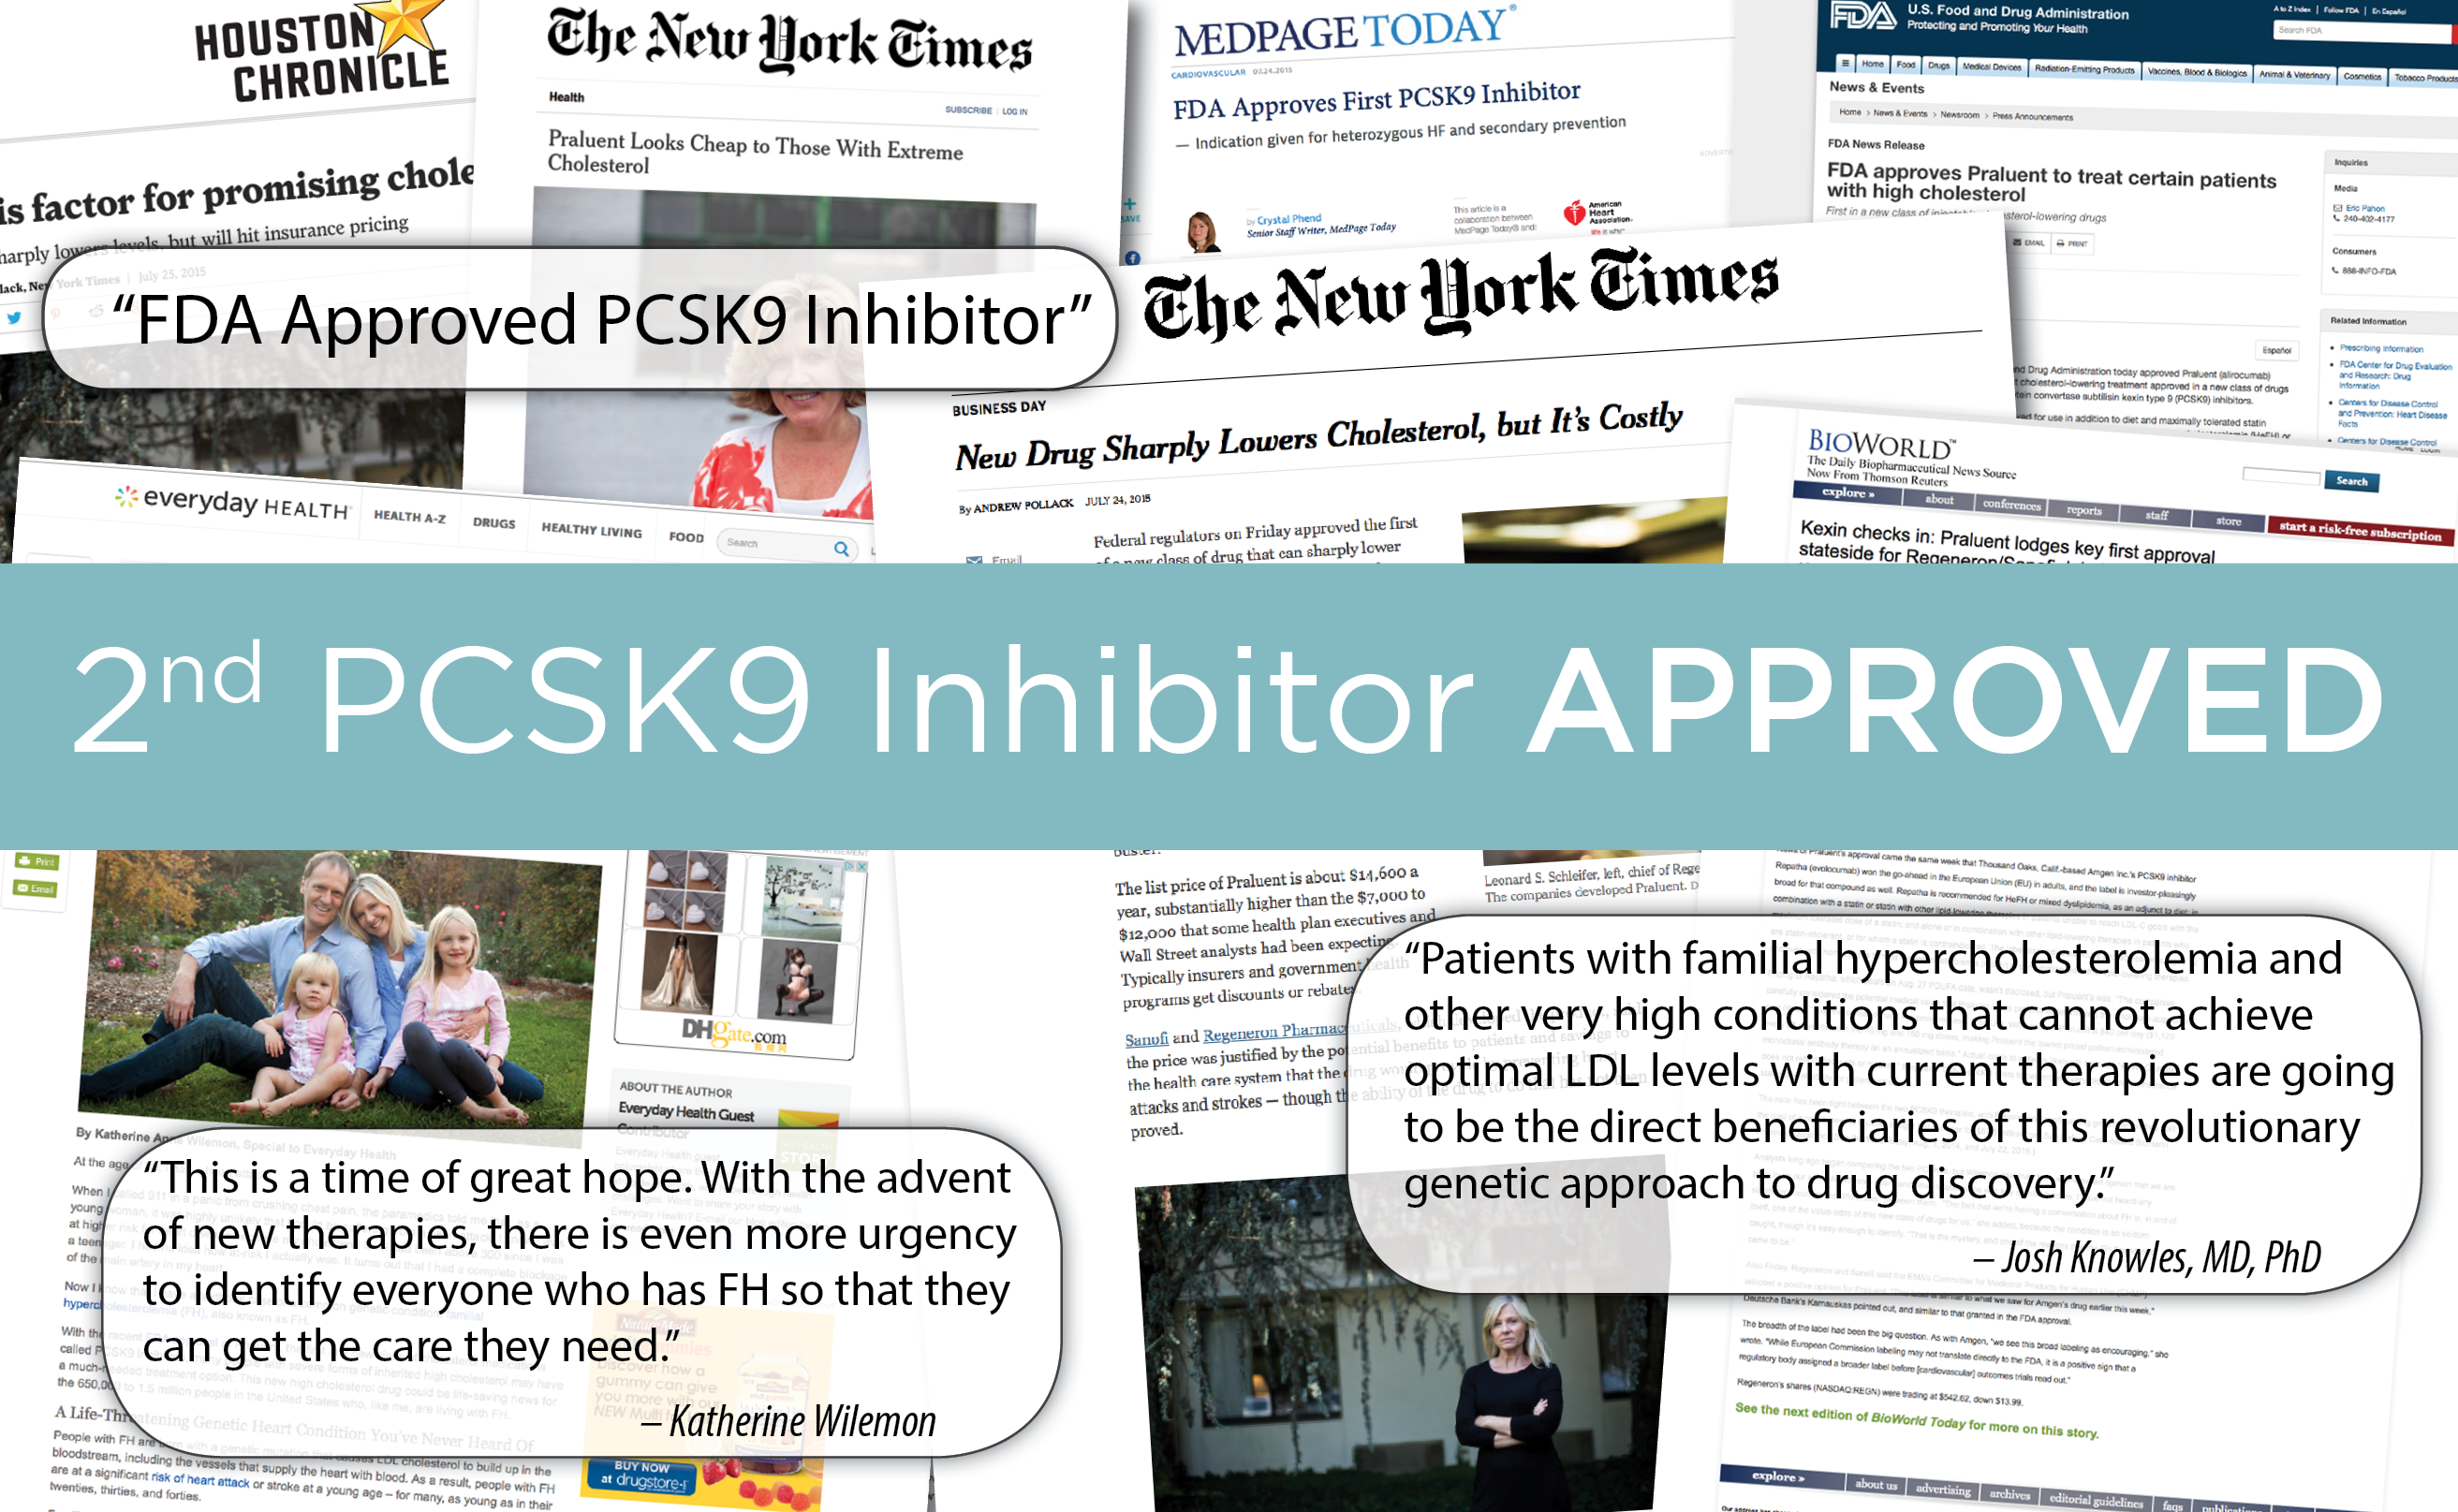 NewsAlert_Collage_2ndPCSK9Approved&JulyArticles_V3_8.25.2015